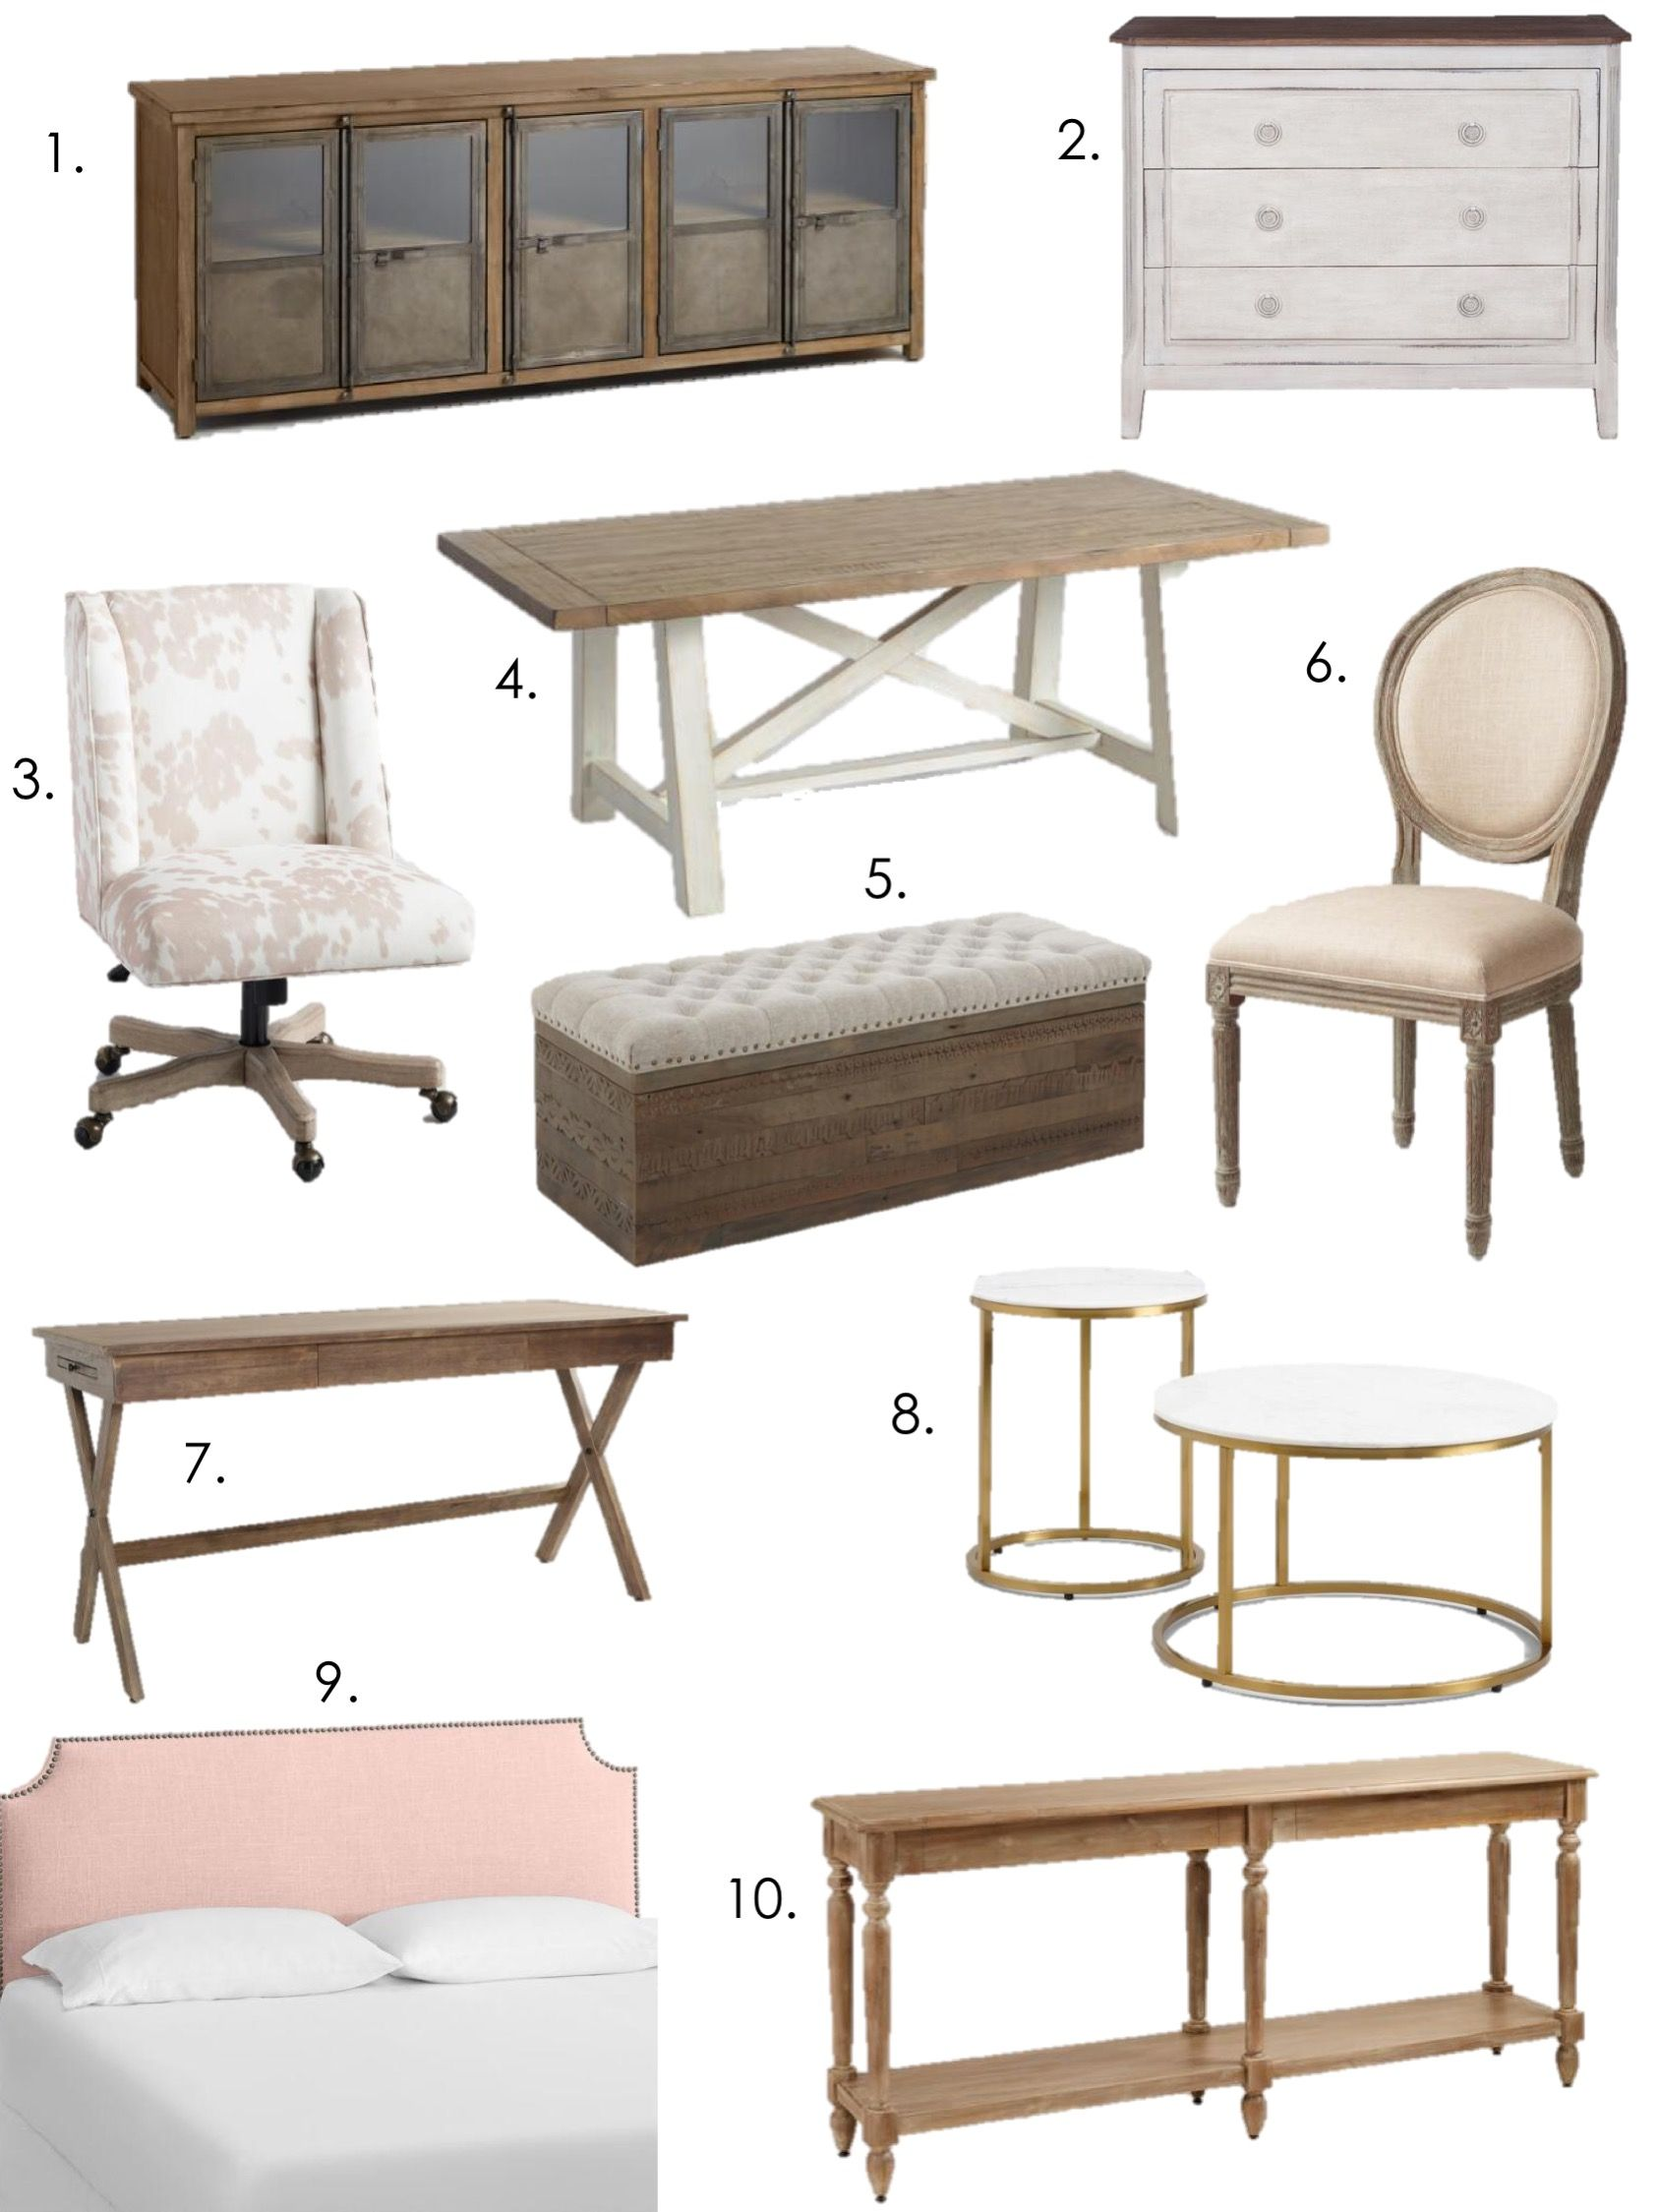 World market furniture sale favorites off all pieces these